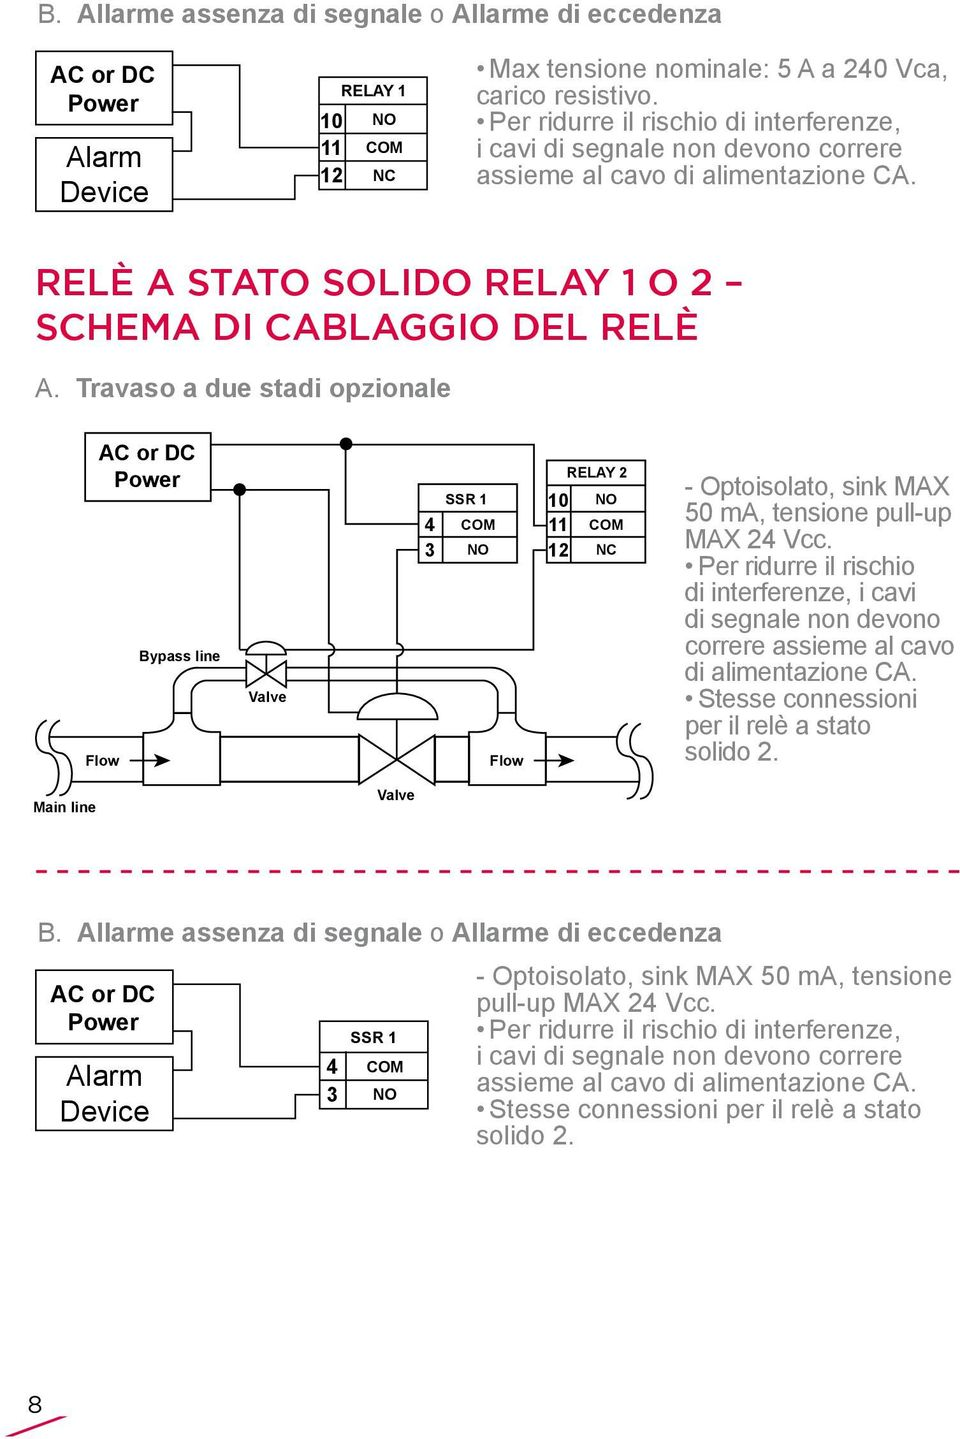 Travaso a due stadi opzionale AC or DC Power Flow Bypass line Valve SSR 1 4 COM 3 NO Flow RELAY 2 10 NO 11 COM 12 NC - Optoisolato, sink MAX 50 ma, tensione pull-up MAX 24 Vcc.